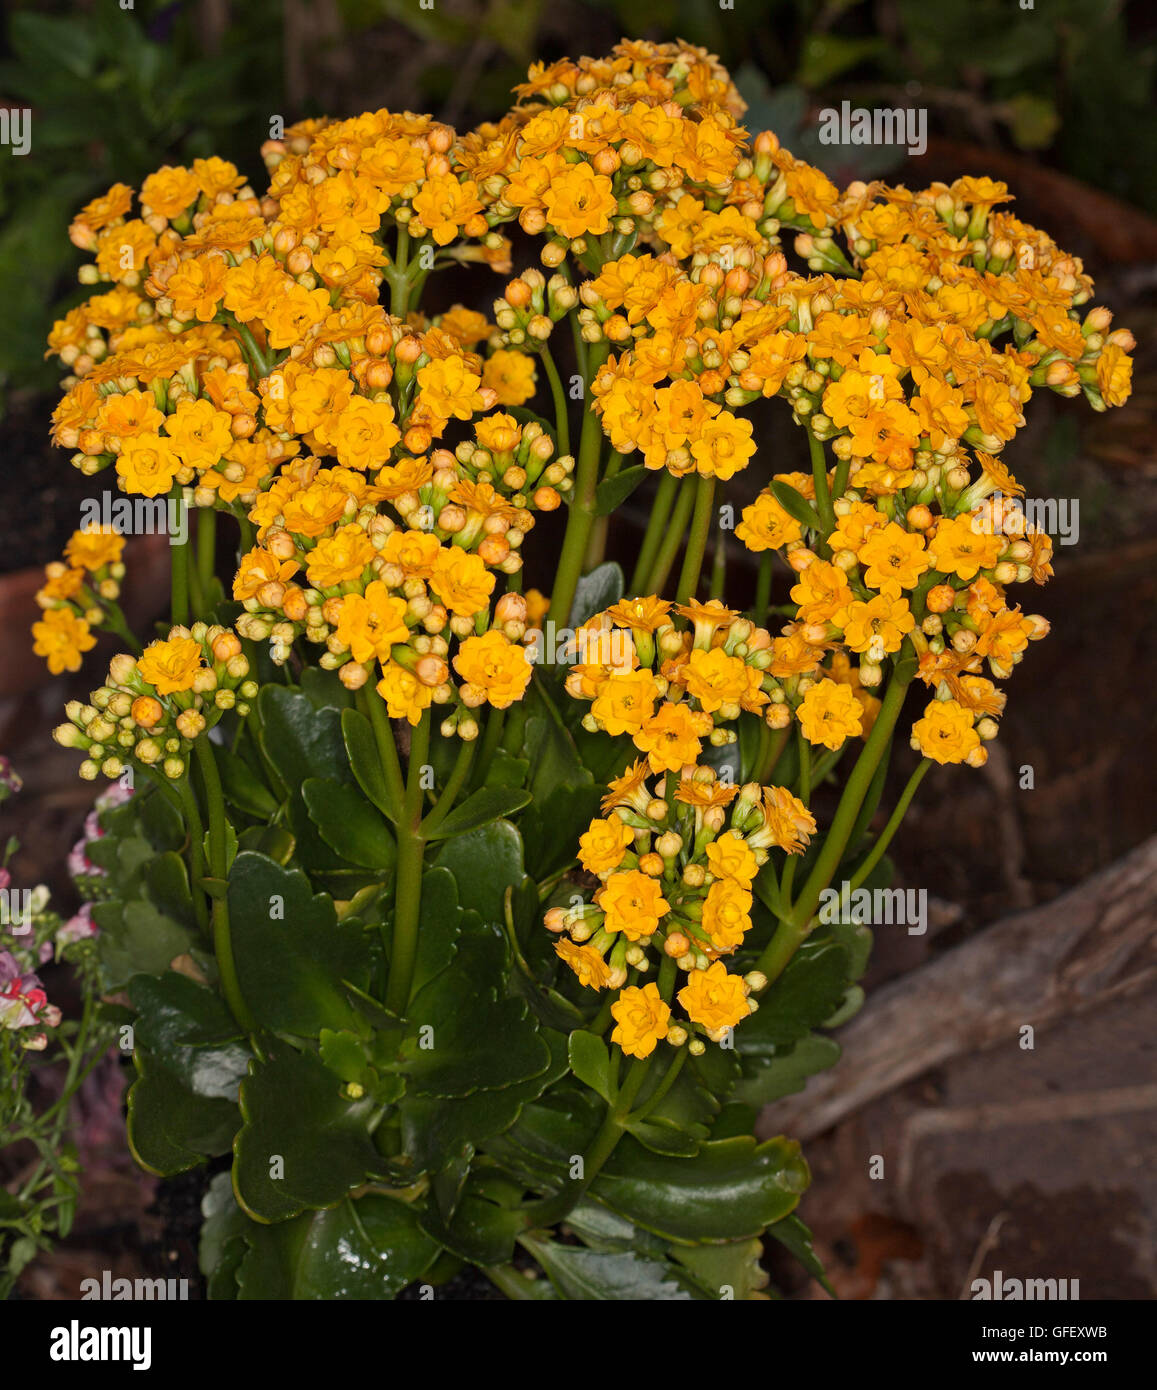 Yellow kalanchoe flowers stock photos yellow kalanchoe flowers cluster of vivid double golden yellow flowers and dark green leaves of succulent plant kalanchoe blossfeldiana mightylinksfo